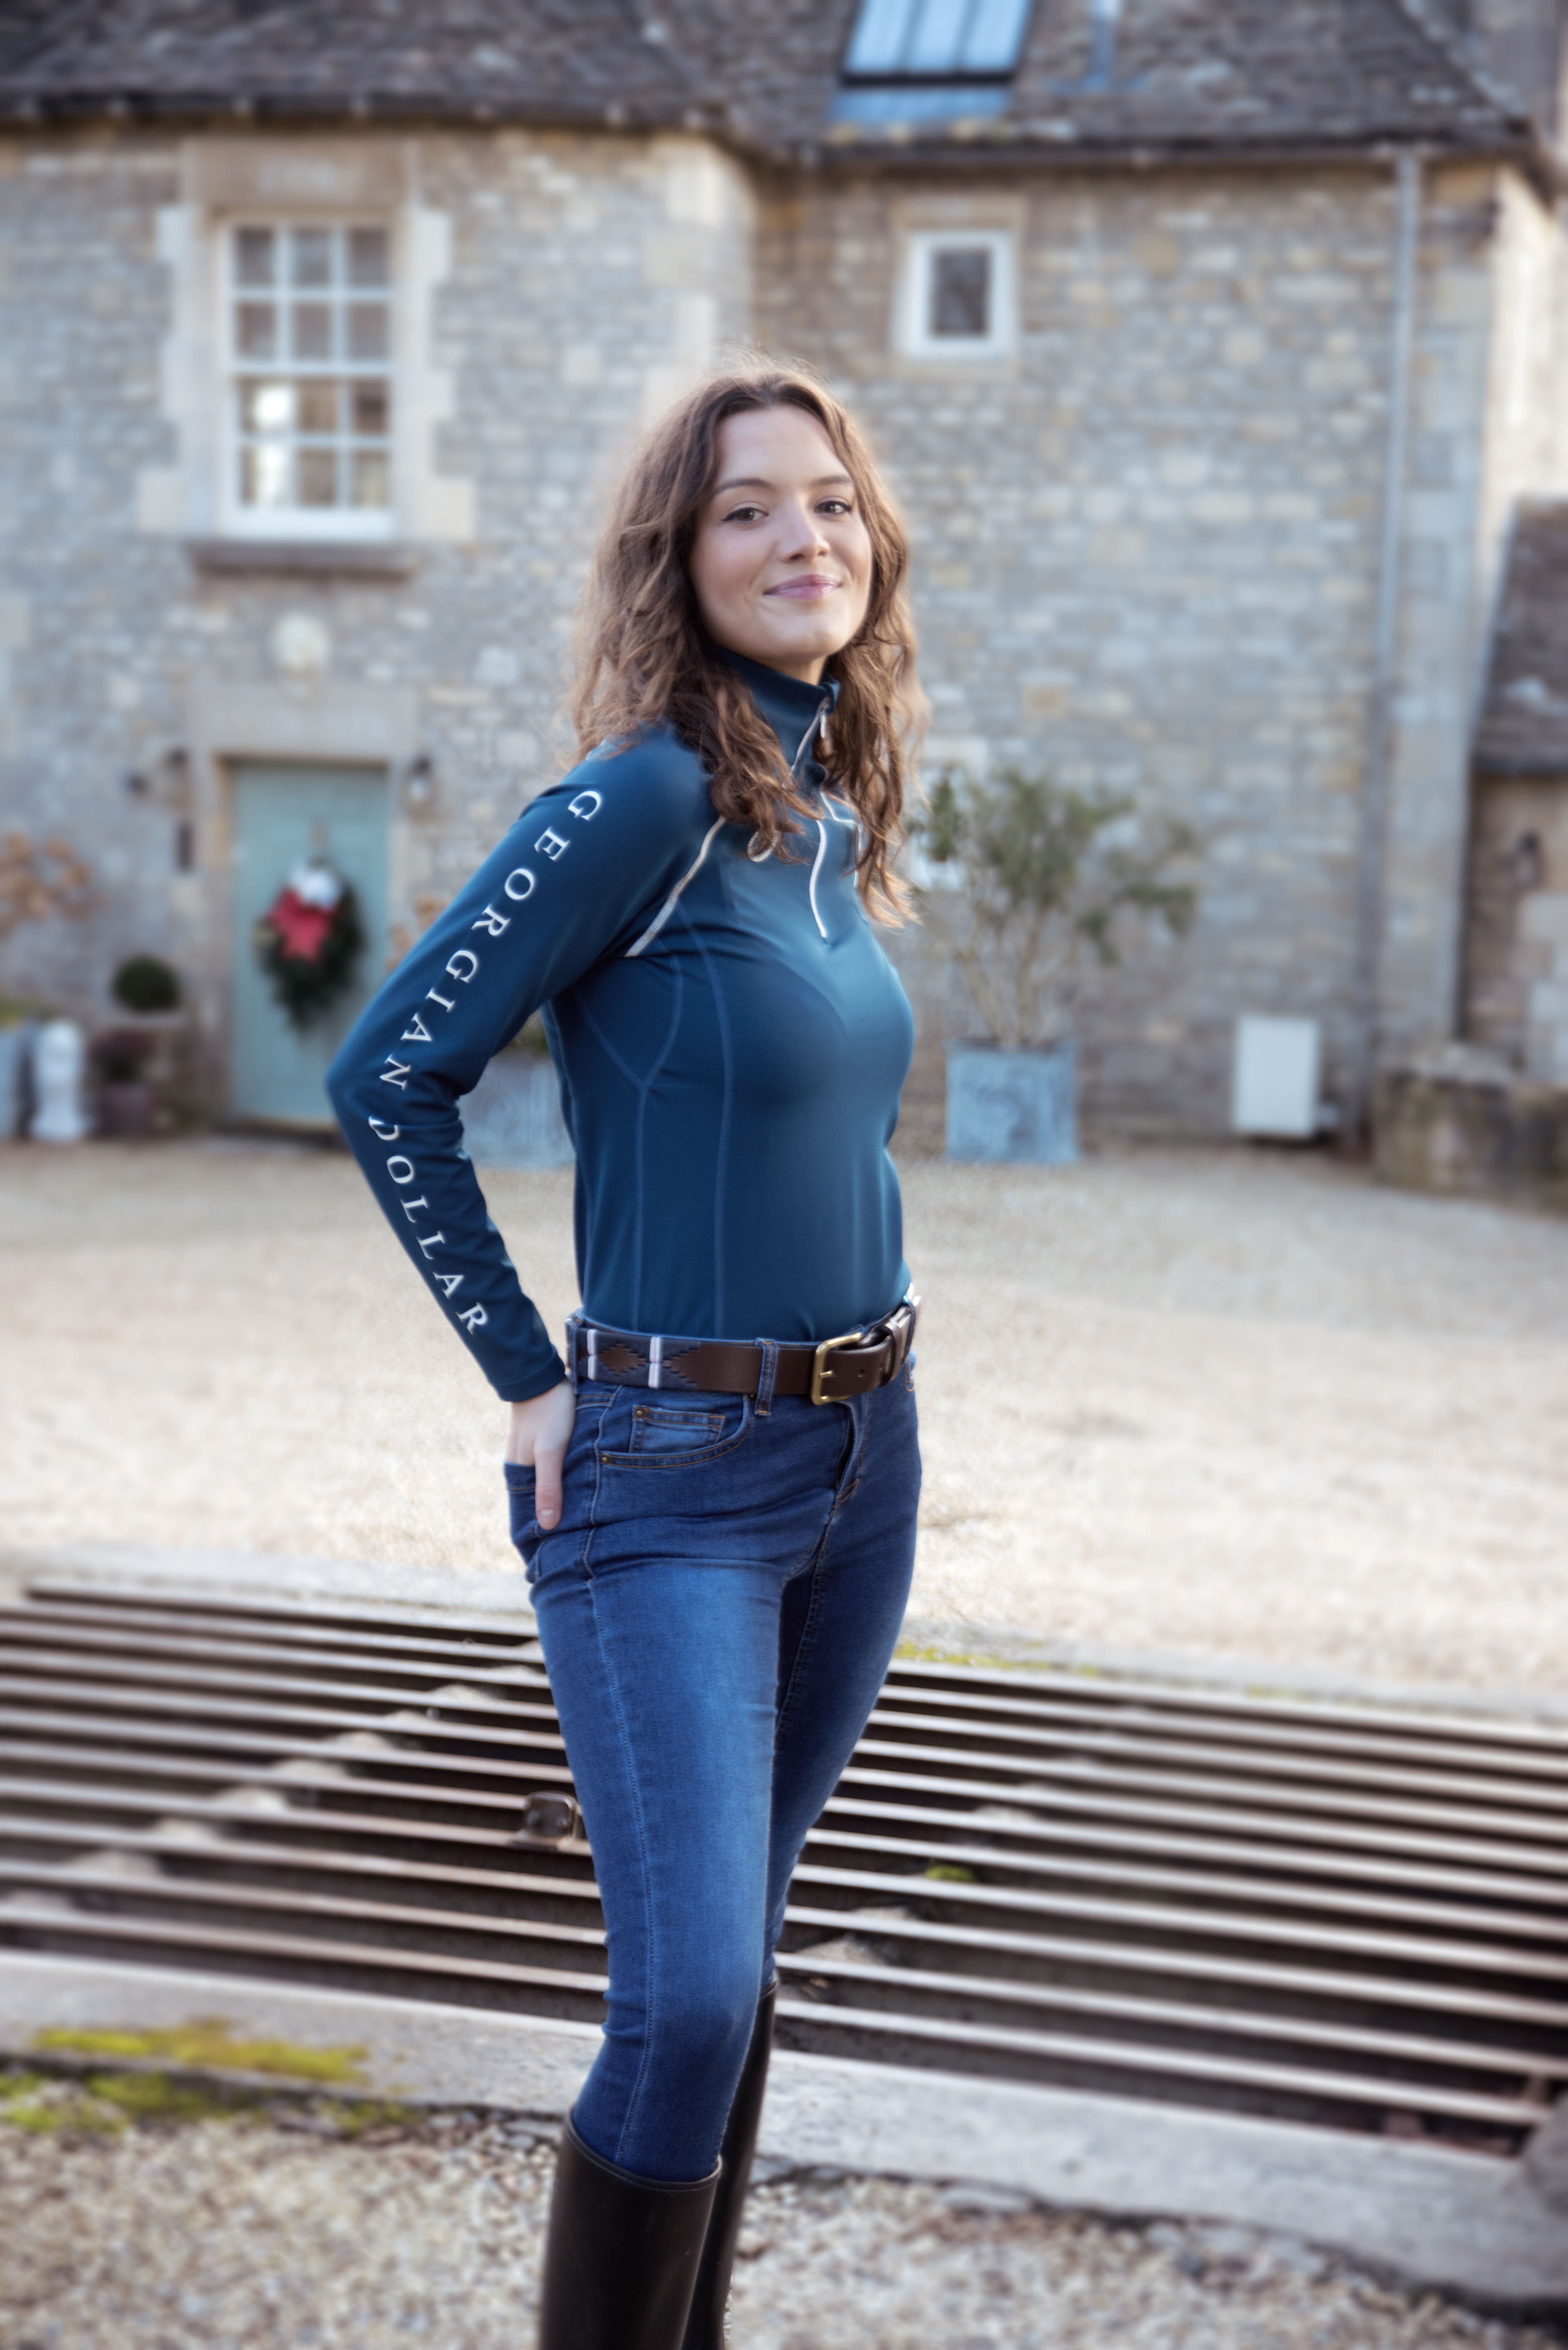 Equestrian Photoshoot For Georgian Dollar. Modelled by Holly Errington by Grace Delnevo Cotswold Fashion Photographer